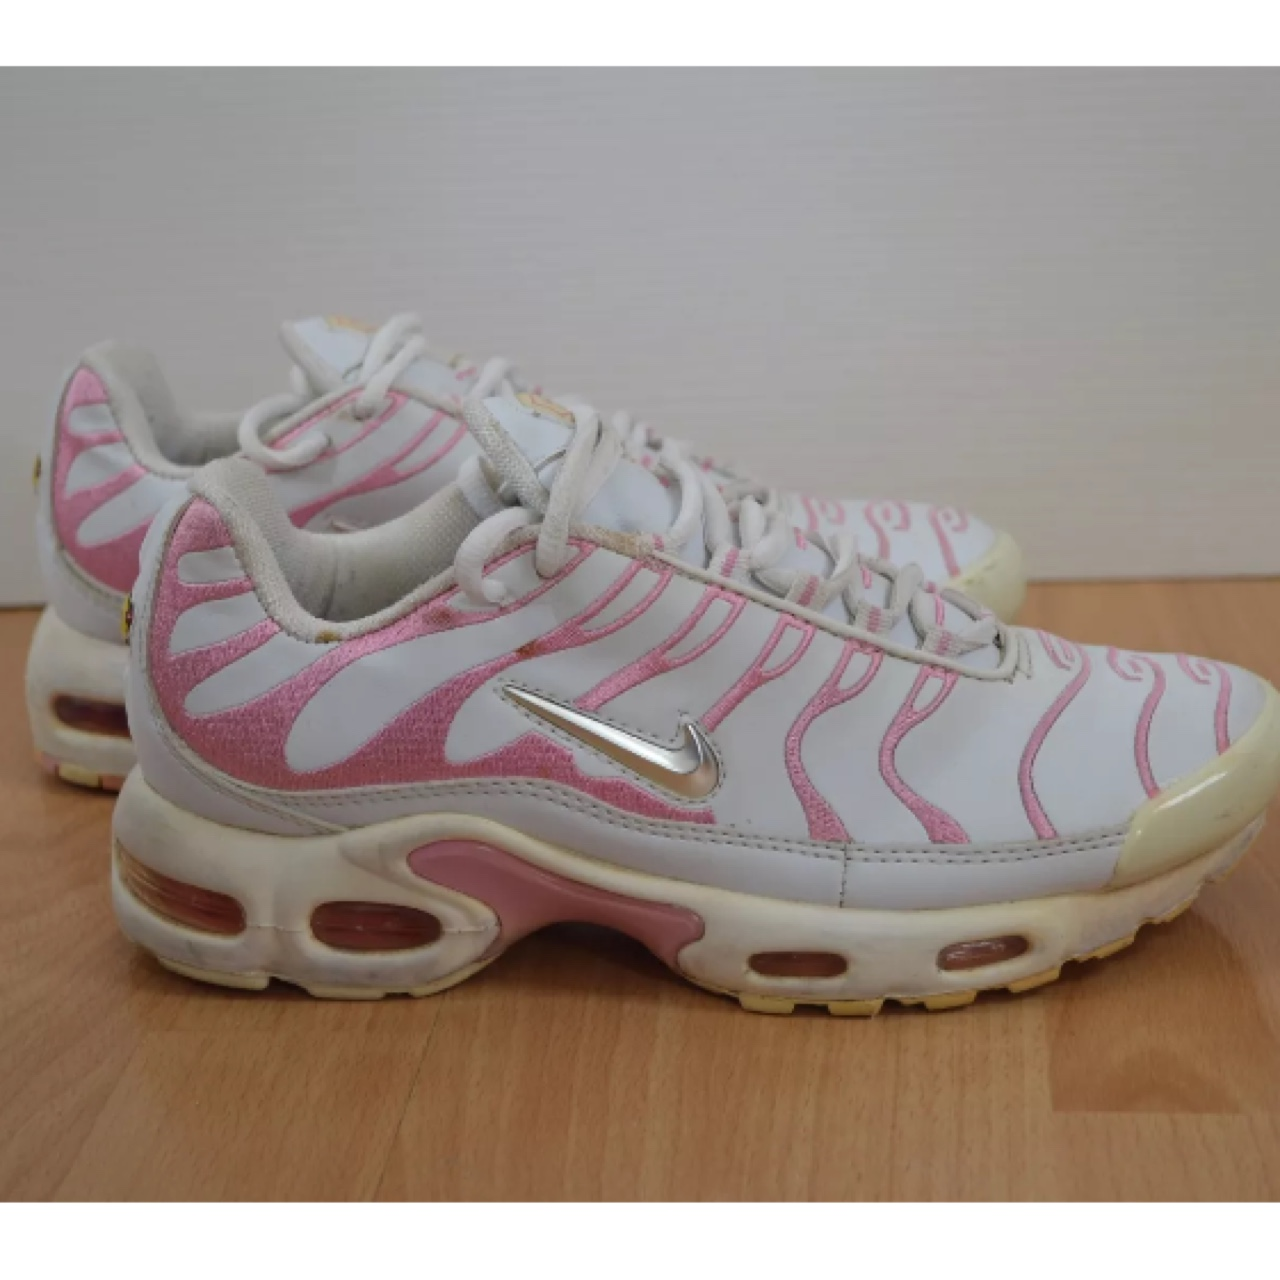 Nike tn tuned baby pink size 5. So rare